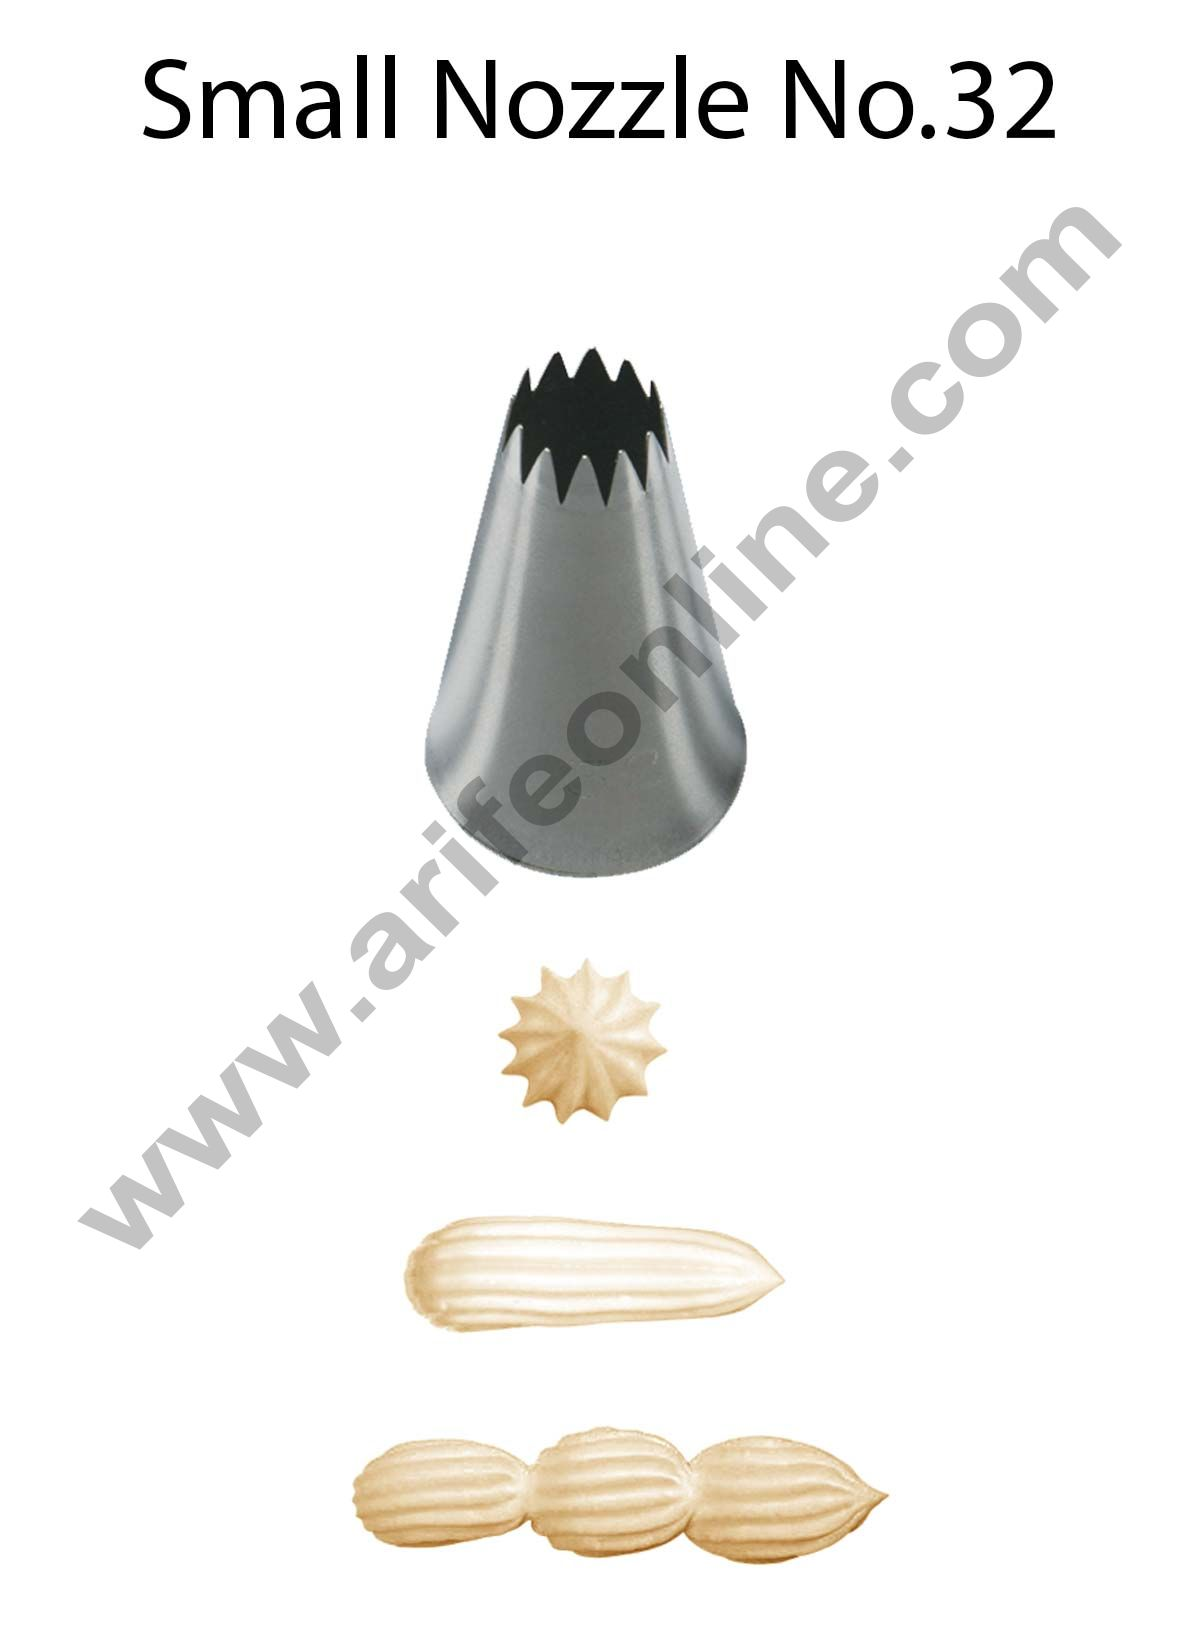 Cake Decor Small Nozzle - No. 32 Open Star Piping Nozzle